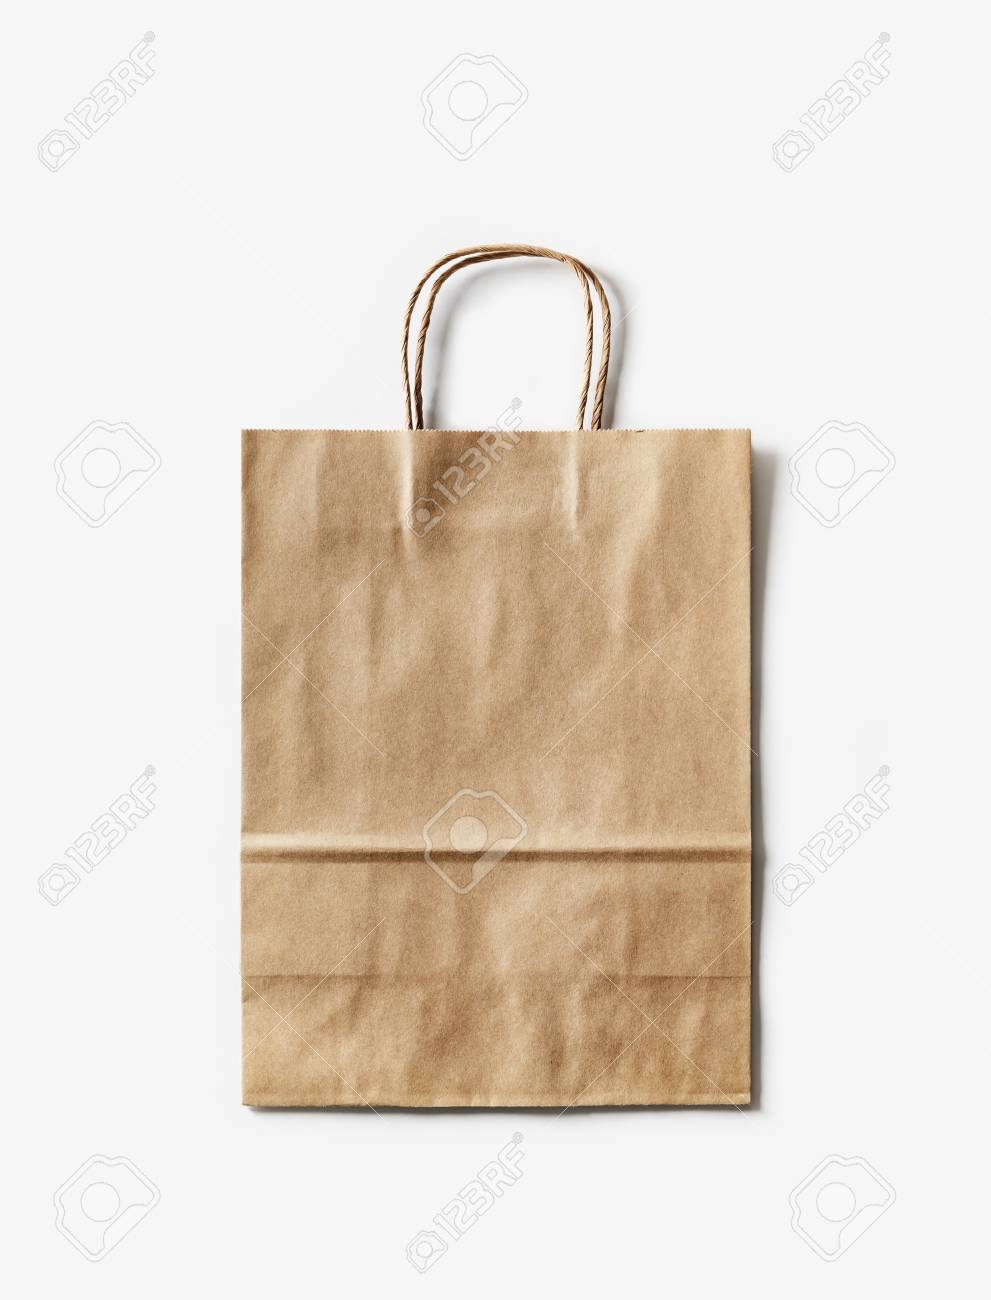 Blank Craft Paper Bag On White Paper Background Recyclable Package